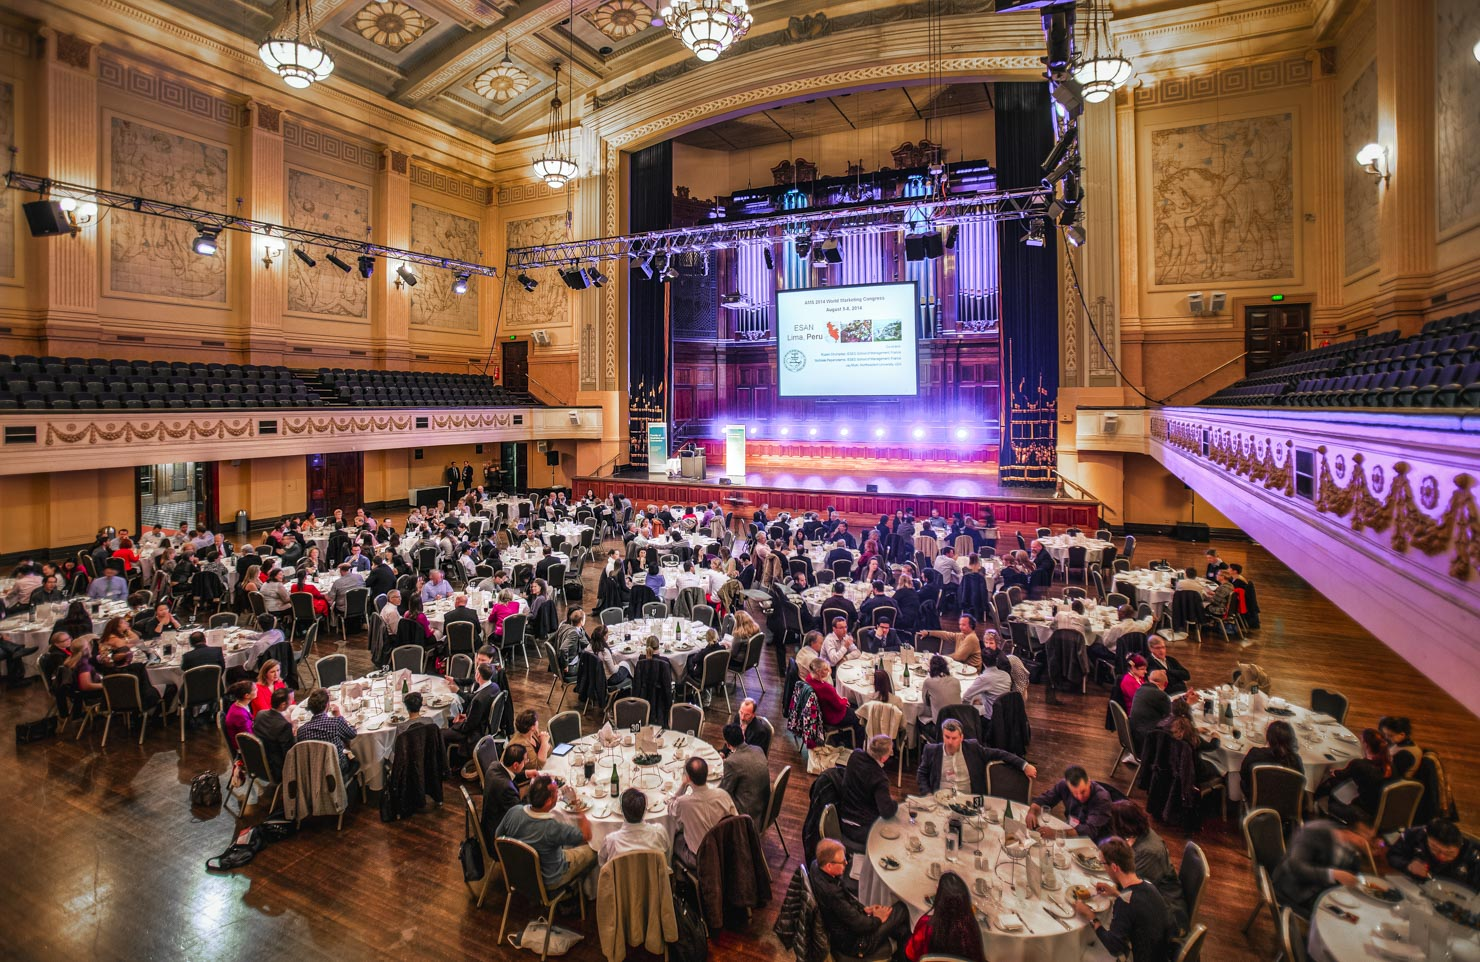 Gala event at Melbourne Town Hall